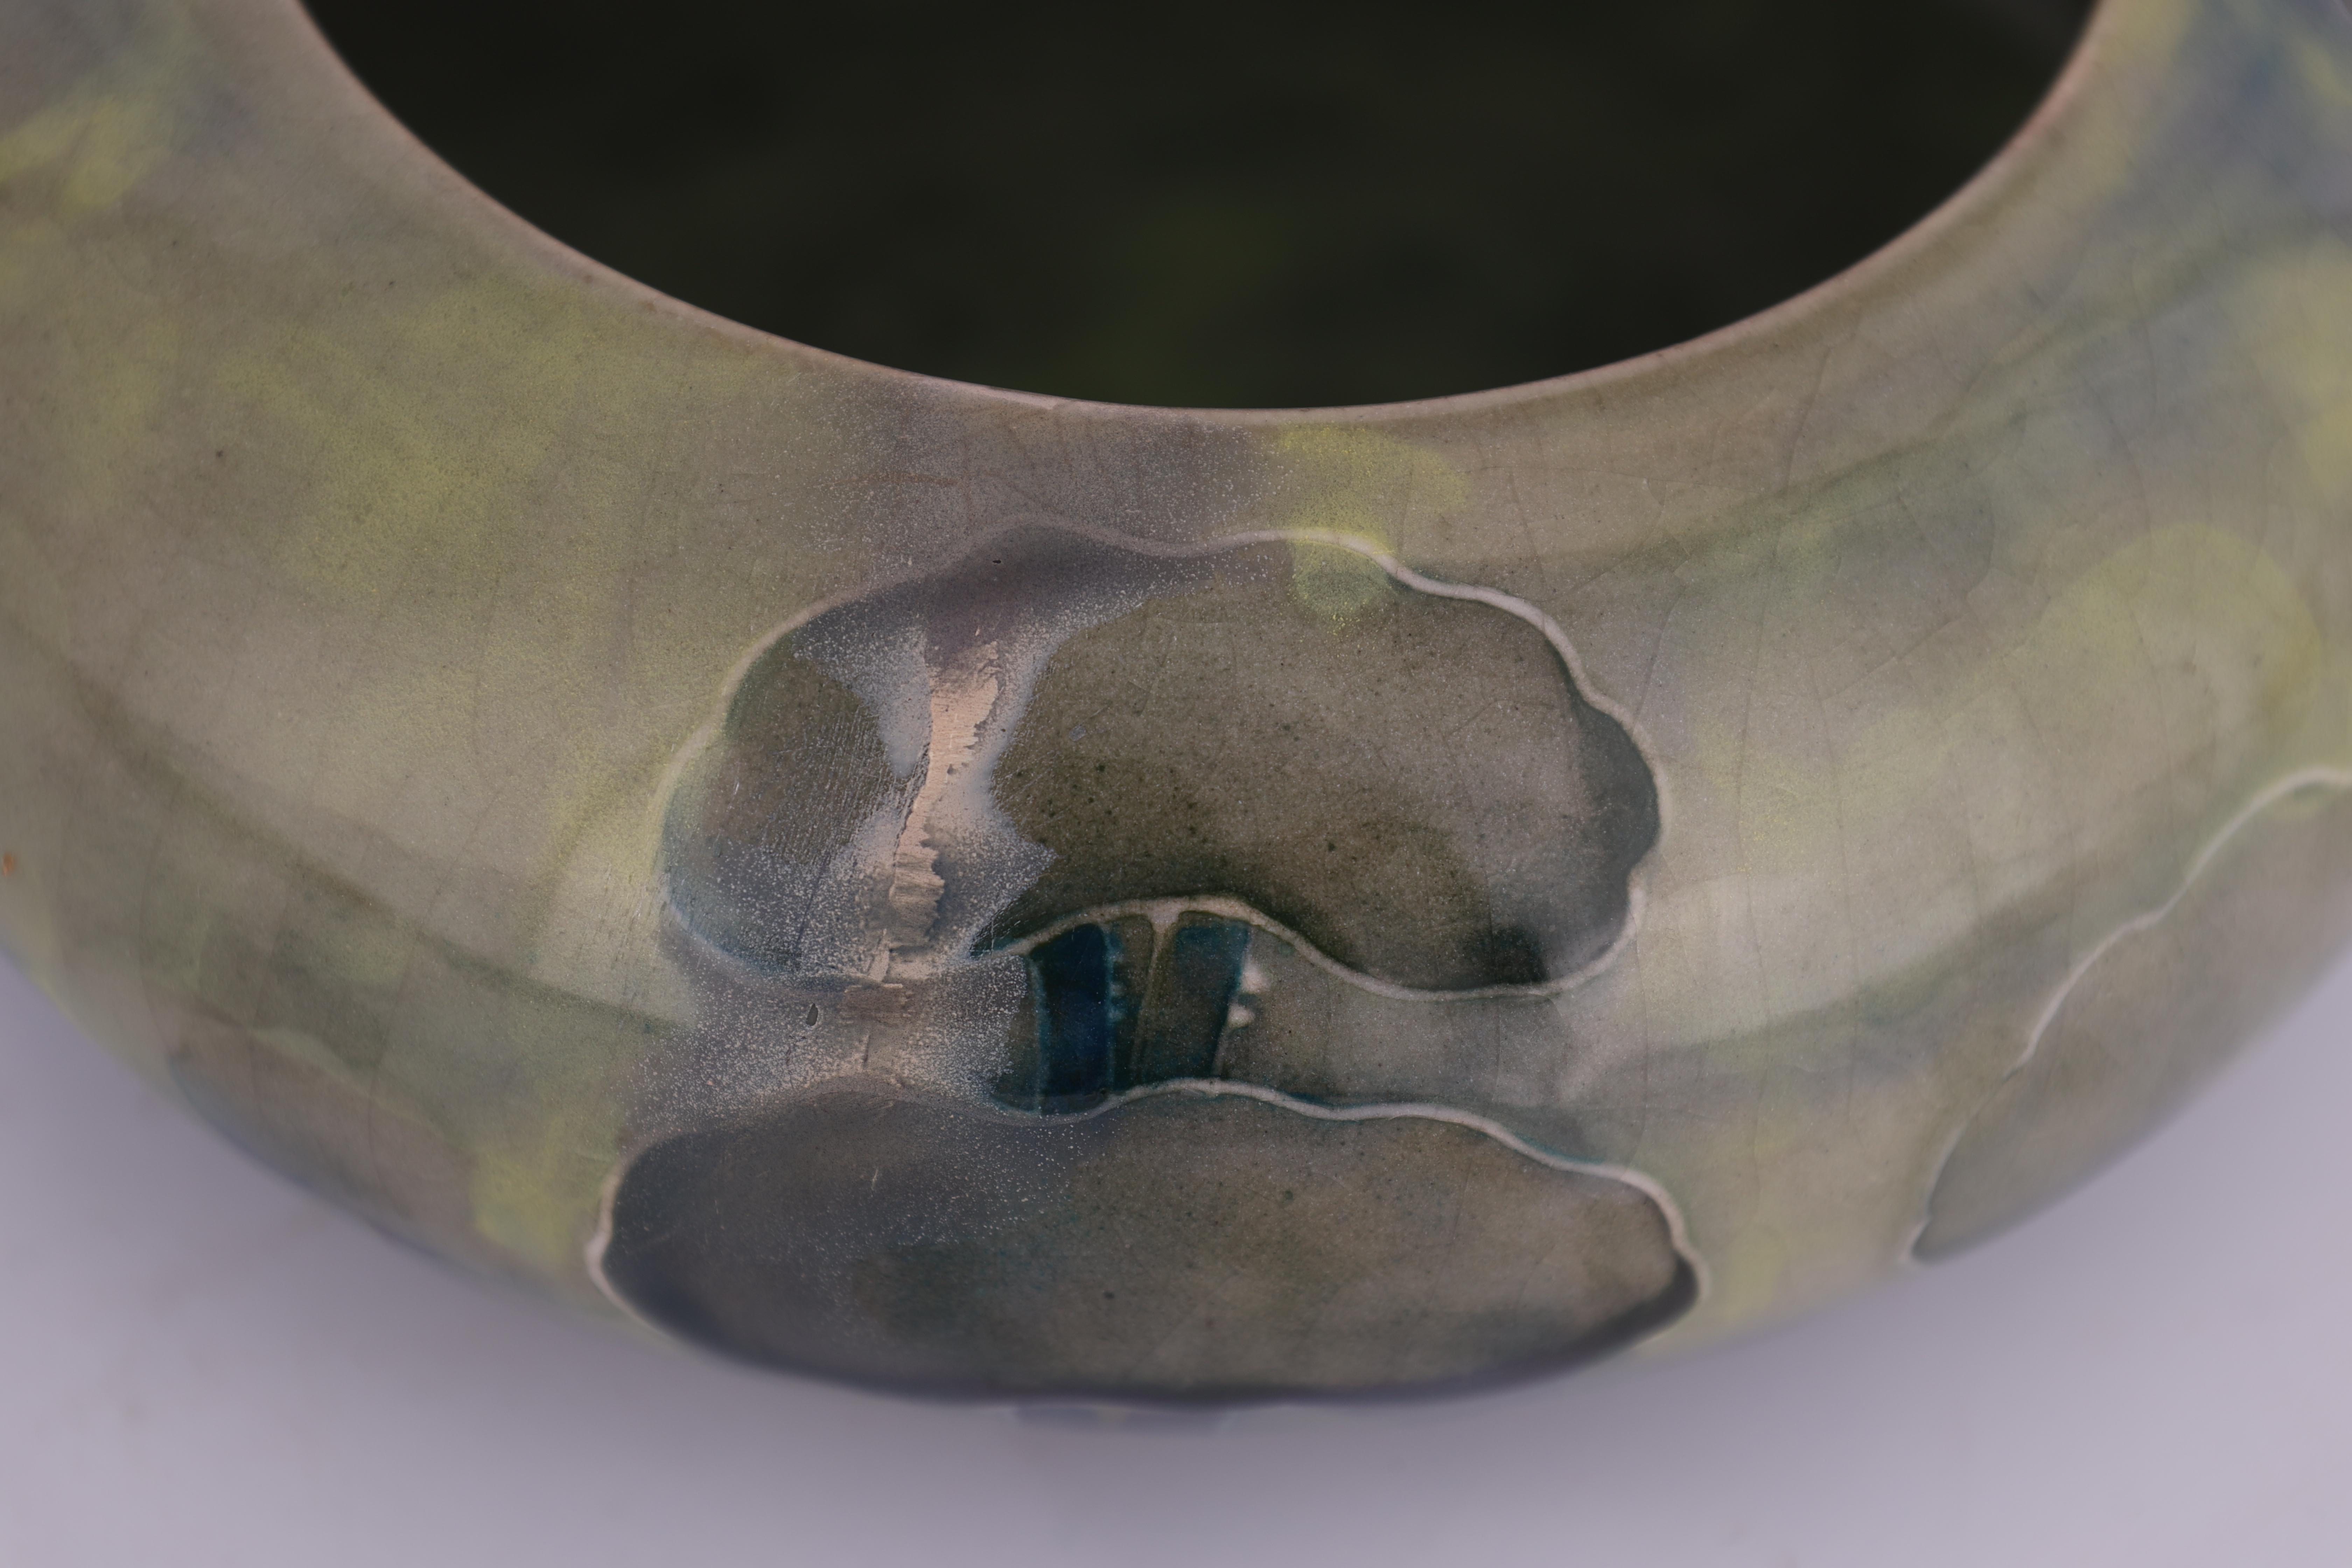 A WILLIAM MOORCROFT BURSLEM SHALLOW BOWL WITH CURVED RIM decorated in the Hazeldene pattern in - Image 5 of 5